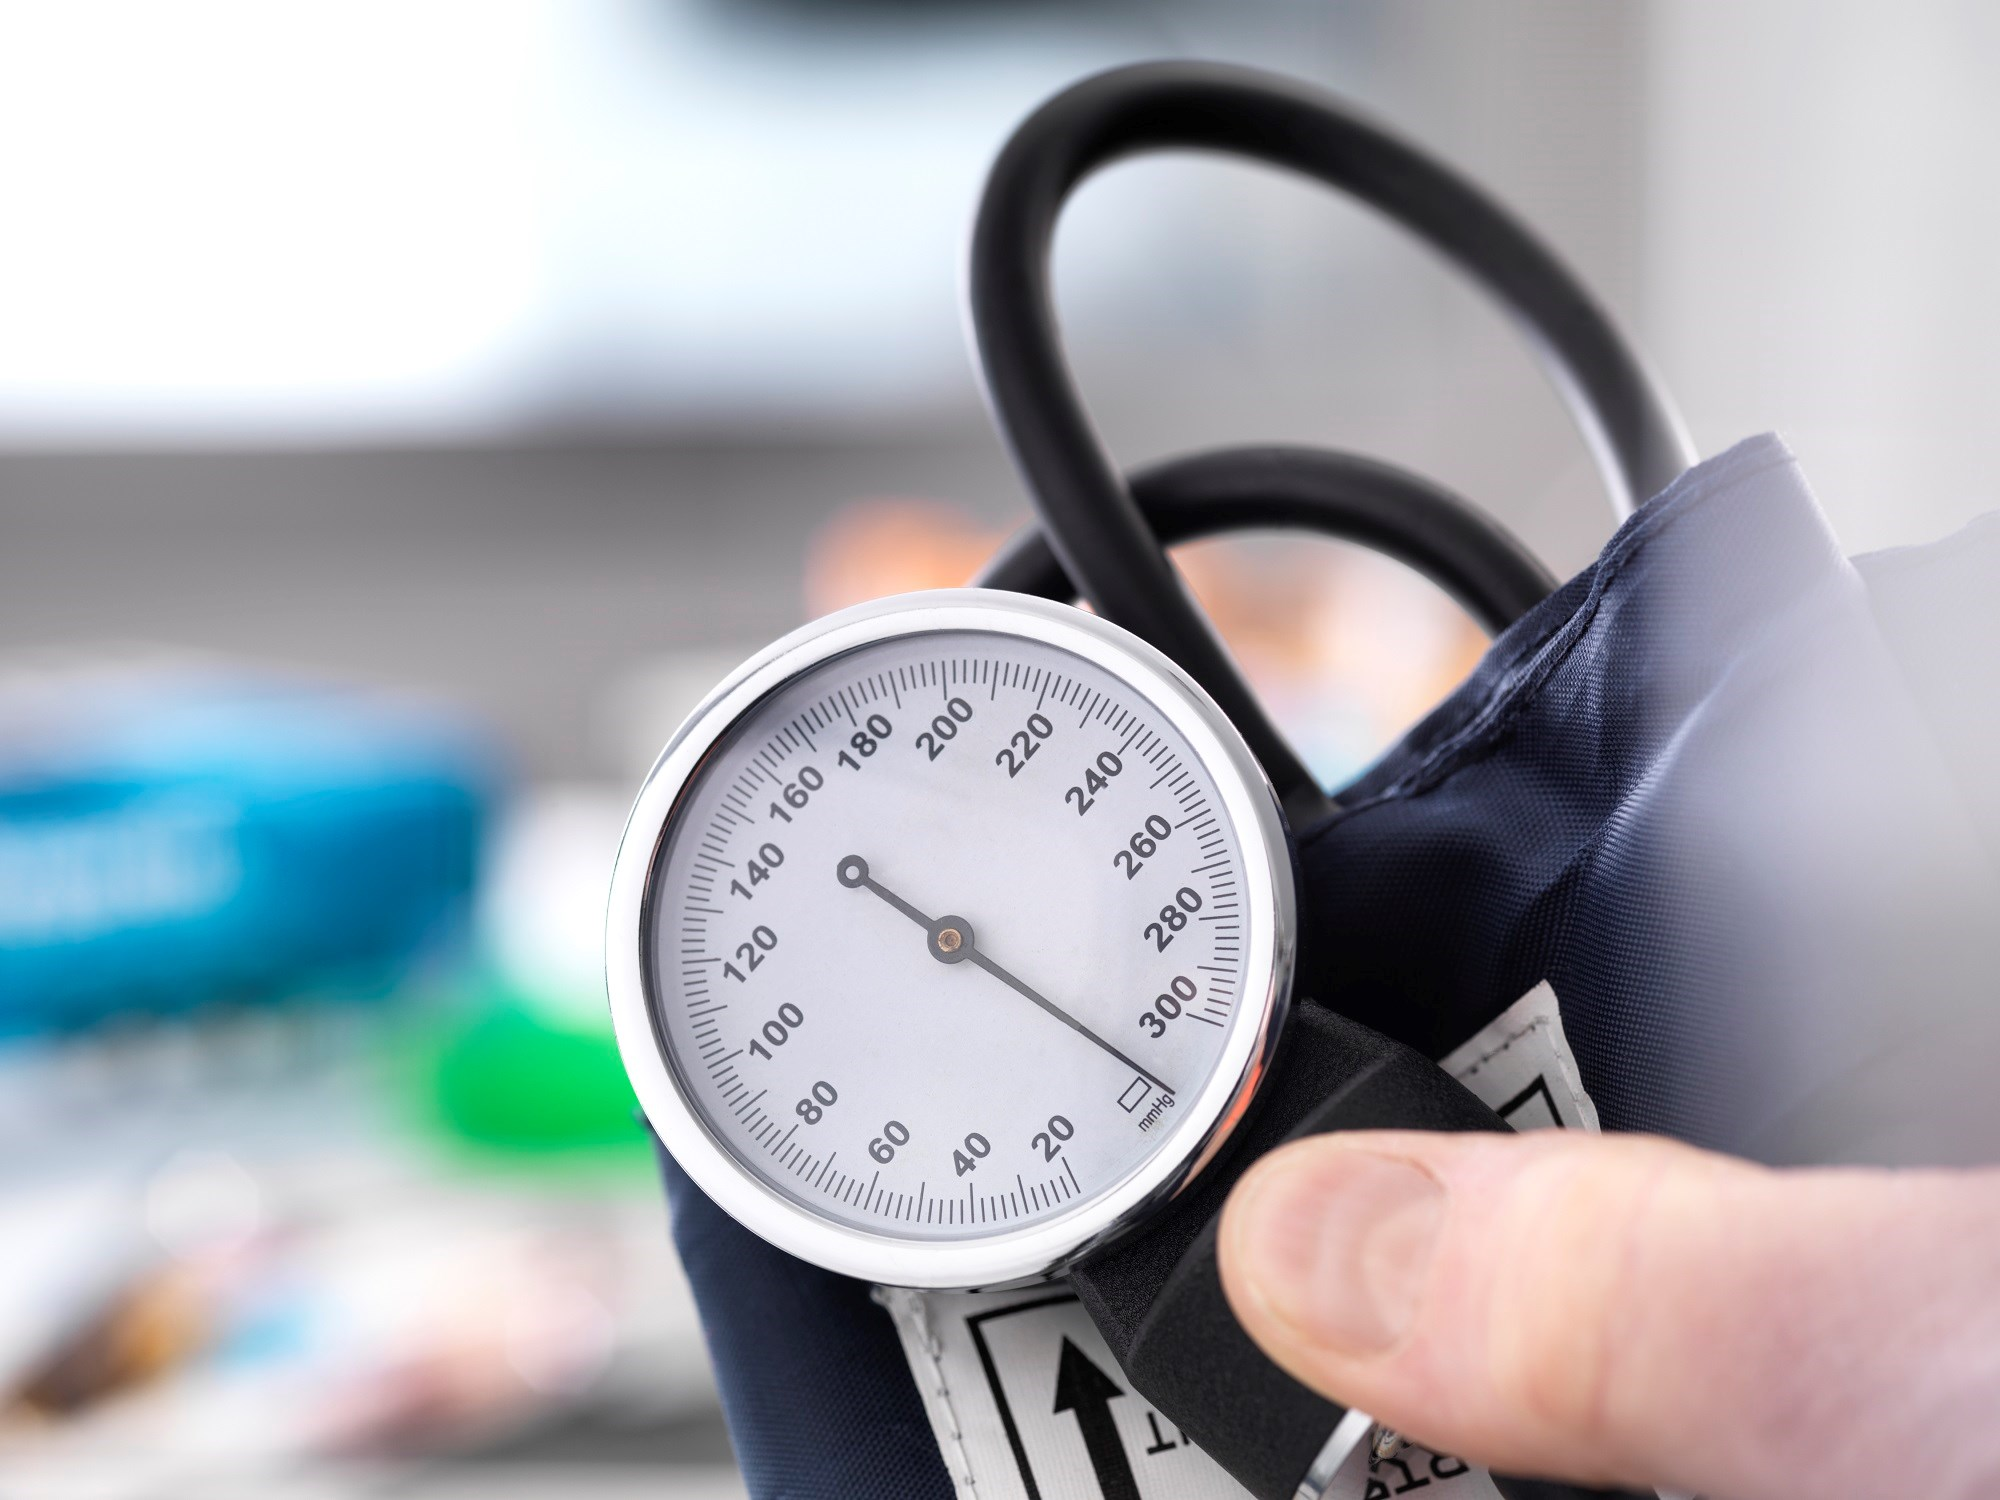 Primary Hypertension May Not Affect Prognosis of Postmenopausal Osteoporosis